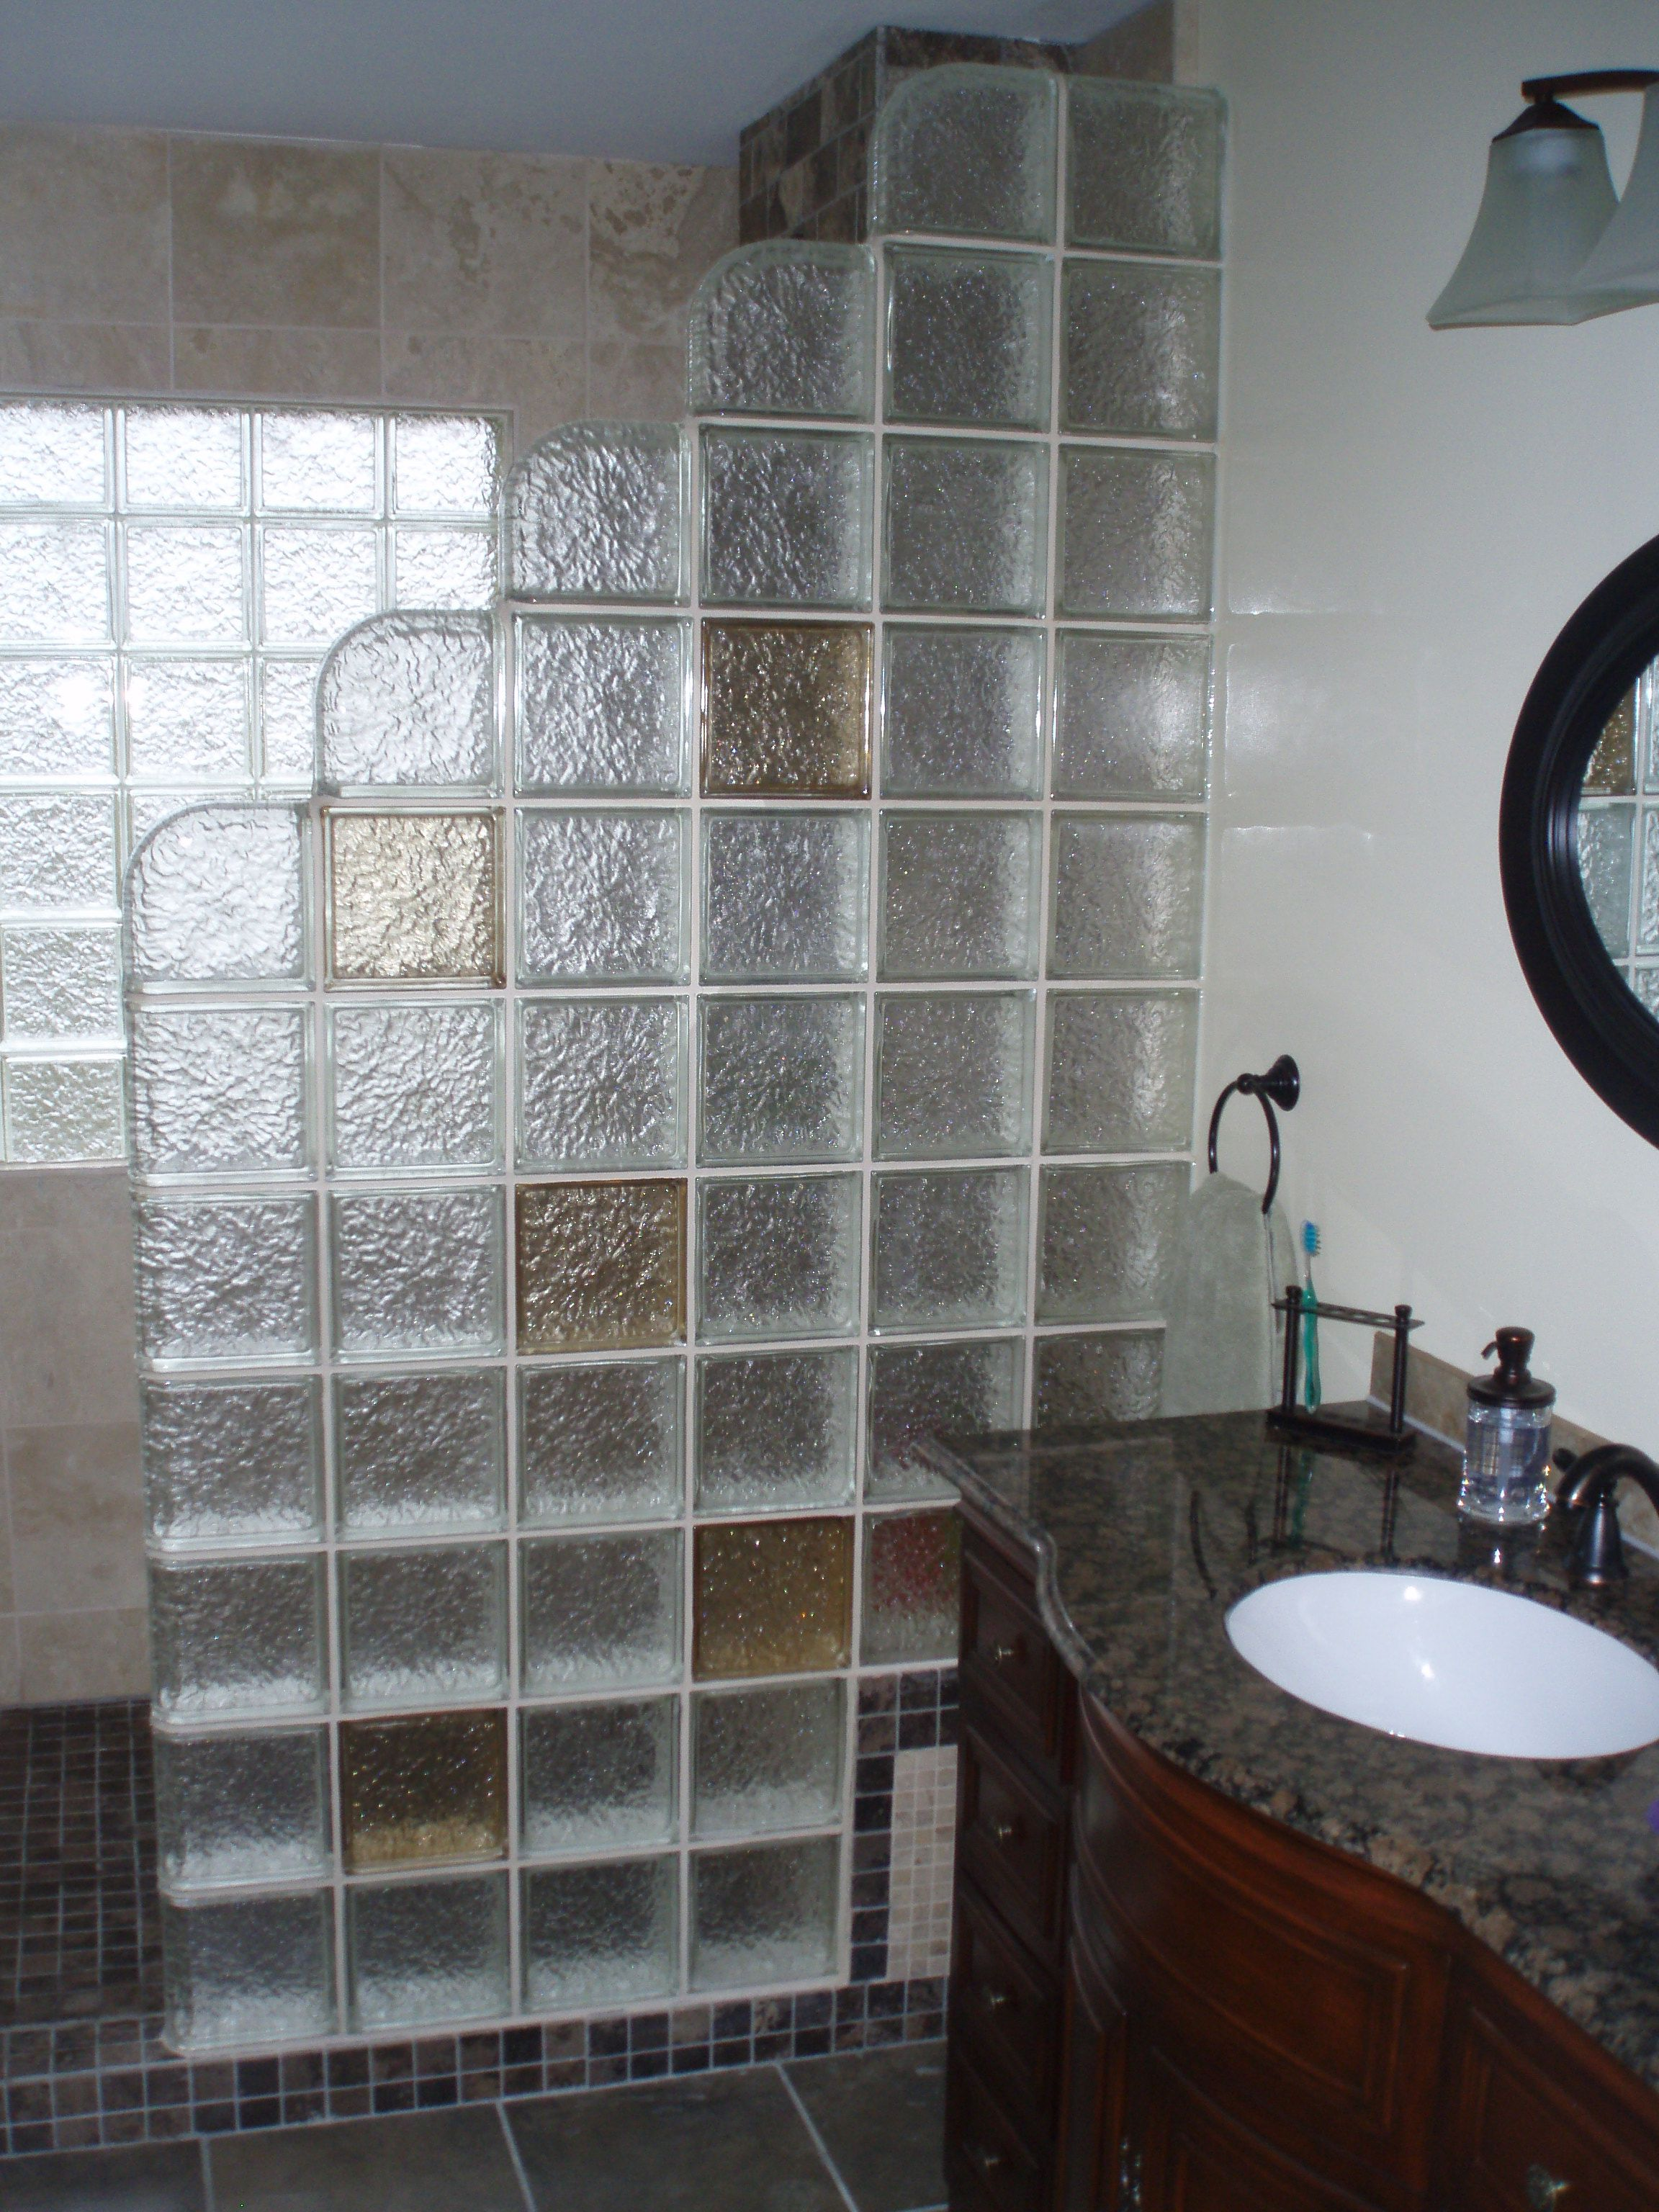 A Step Down Colored Glass Block Wall Can Add Style And Streaming